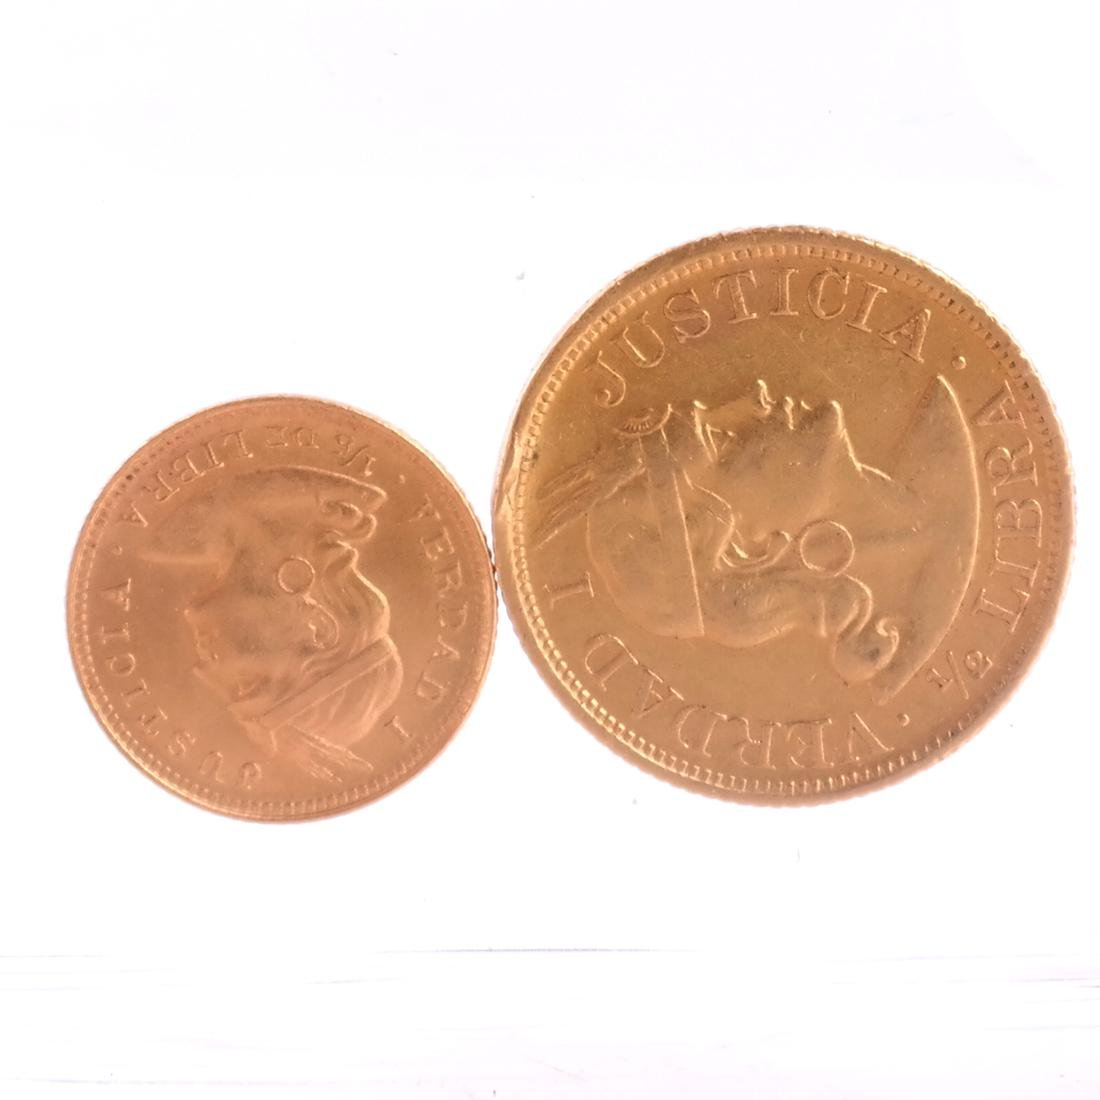 2 Lima Gold Coins, 1907 & 1917